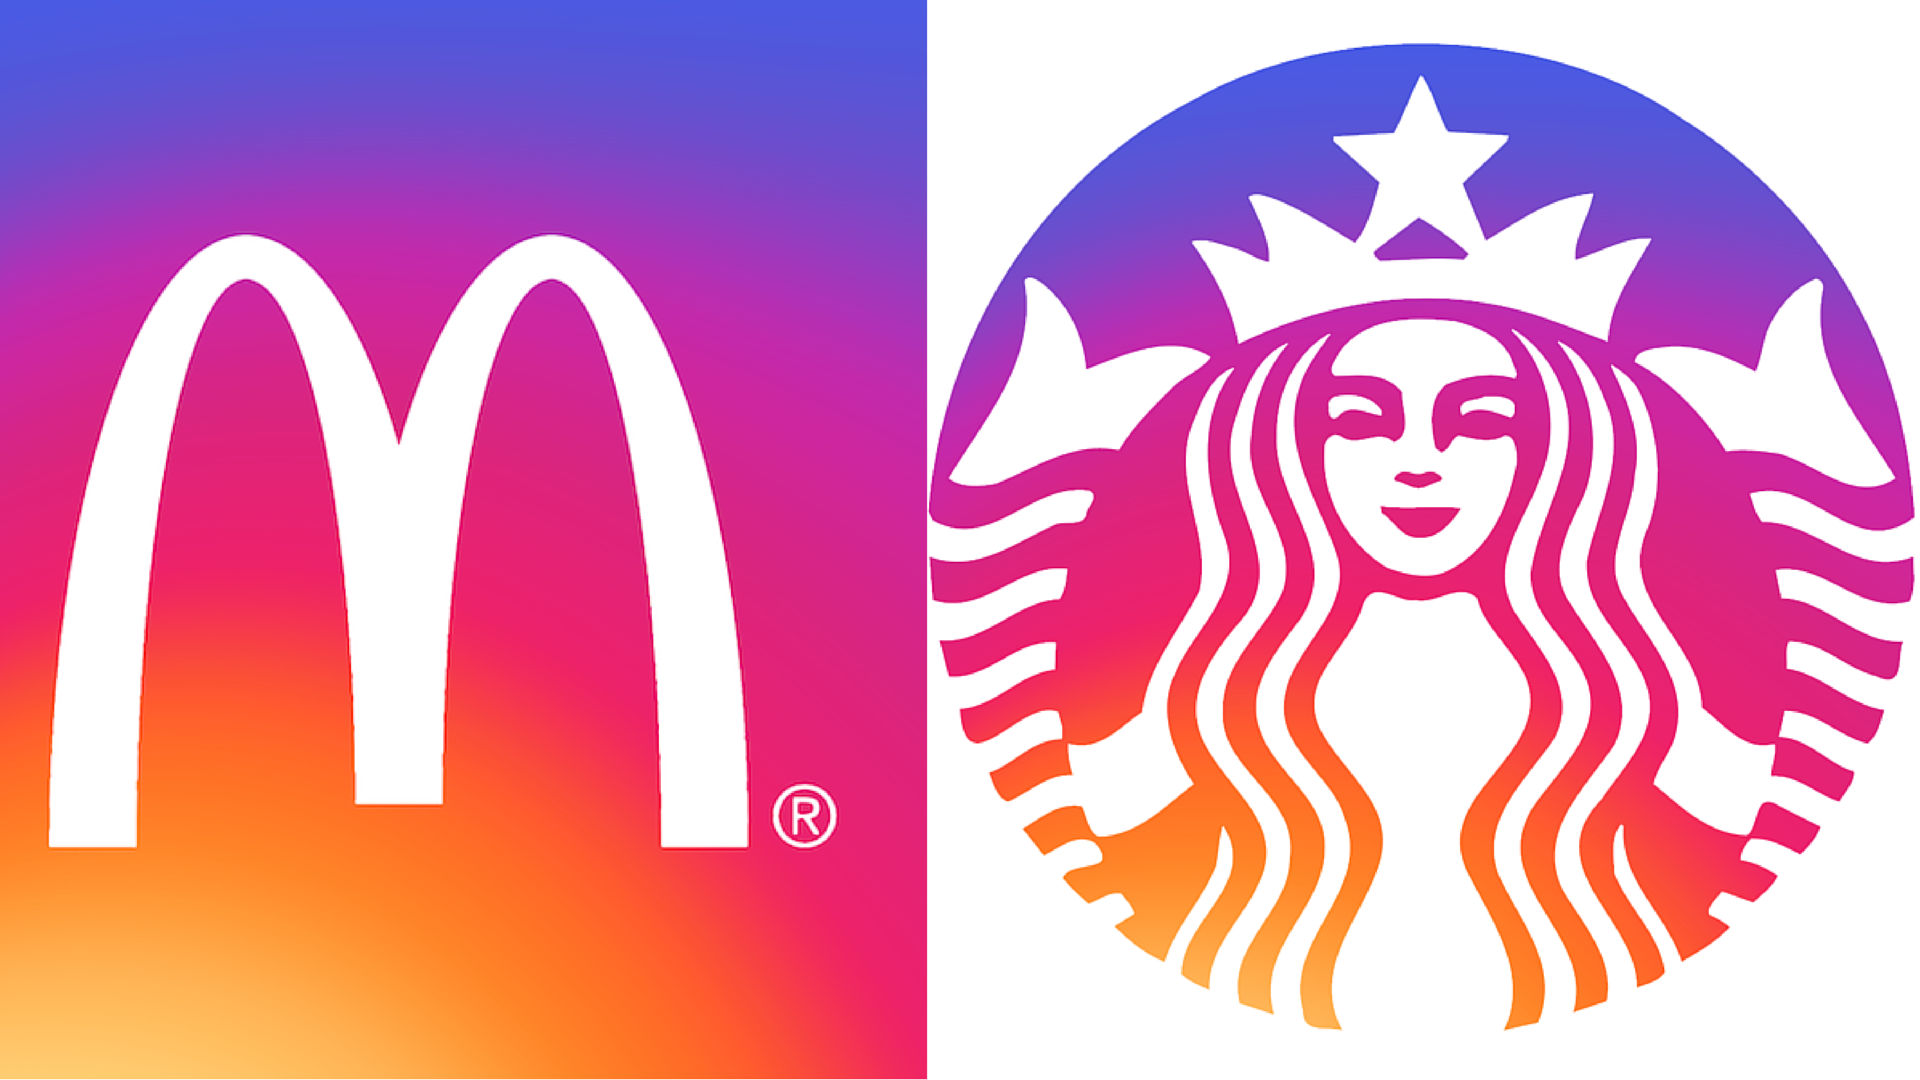 Logos marques version Instagram